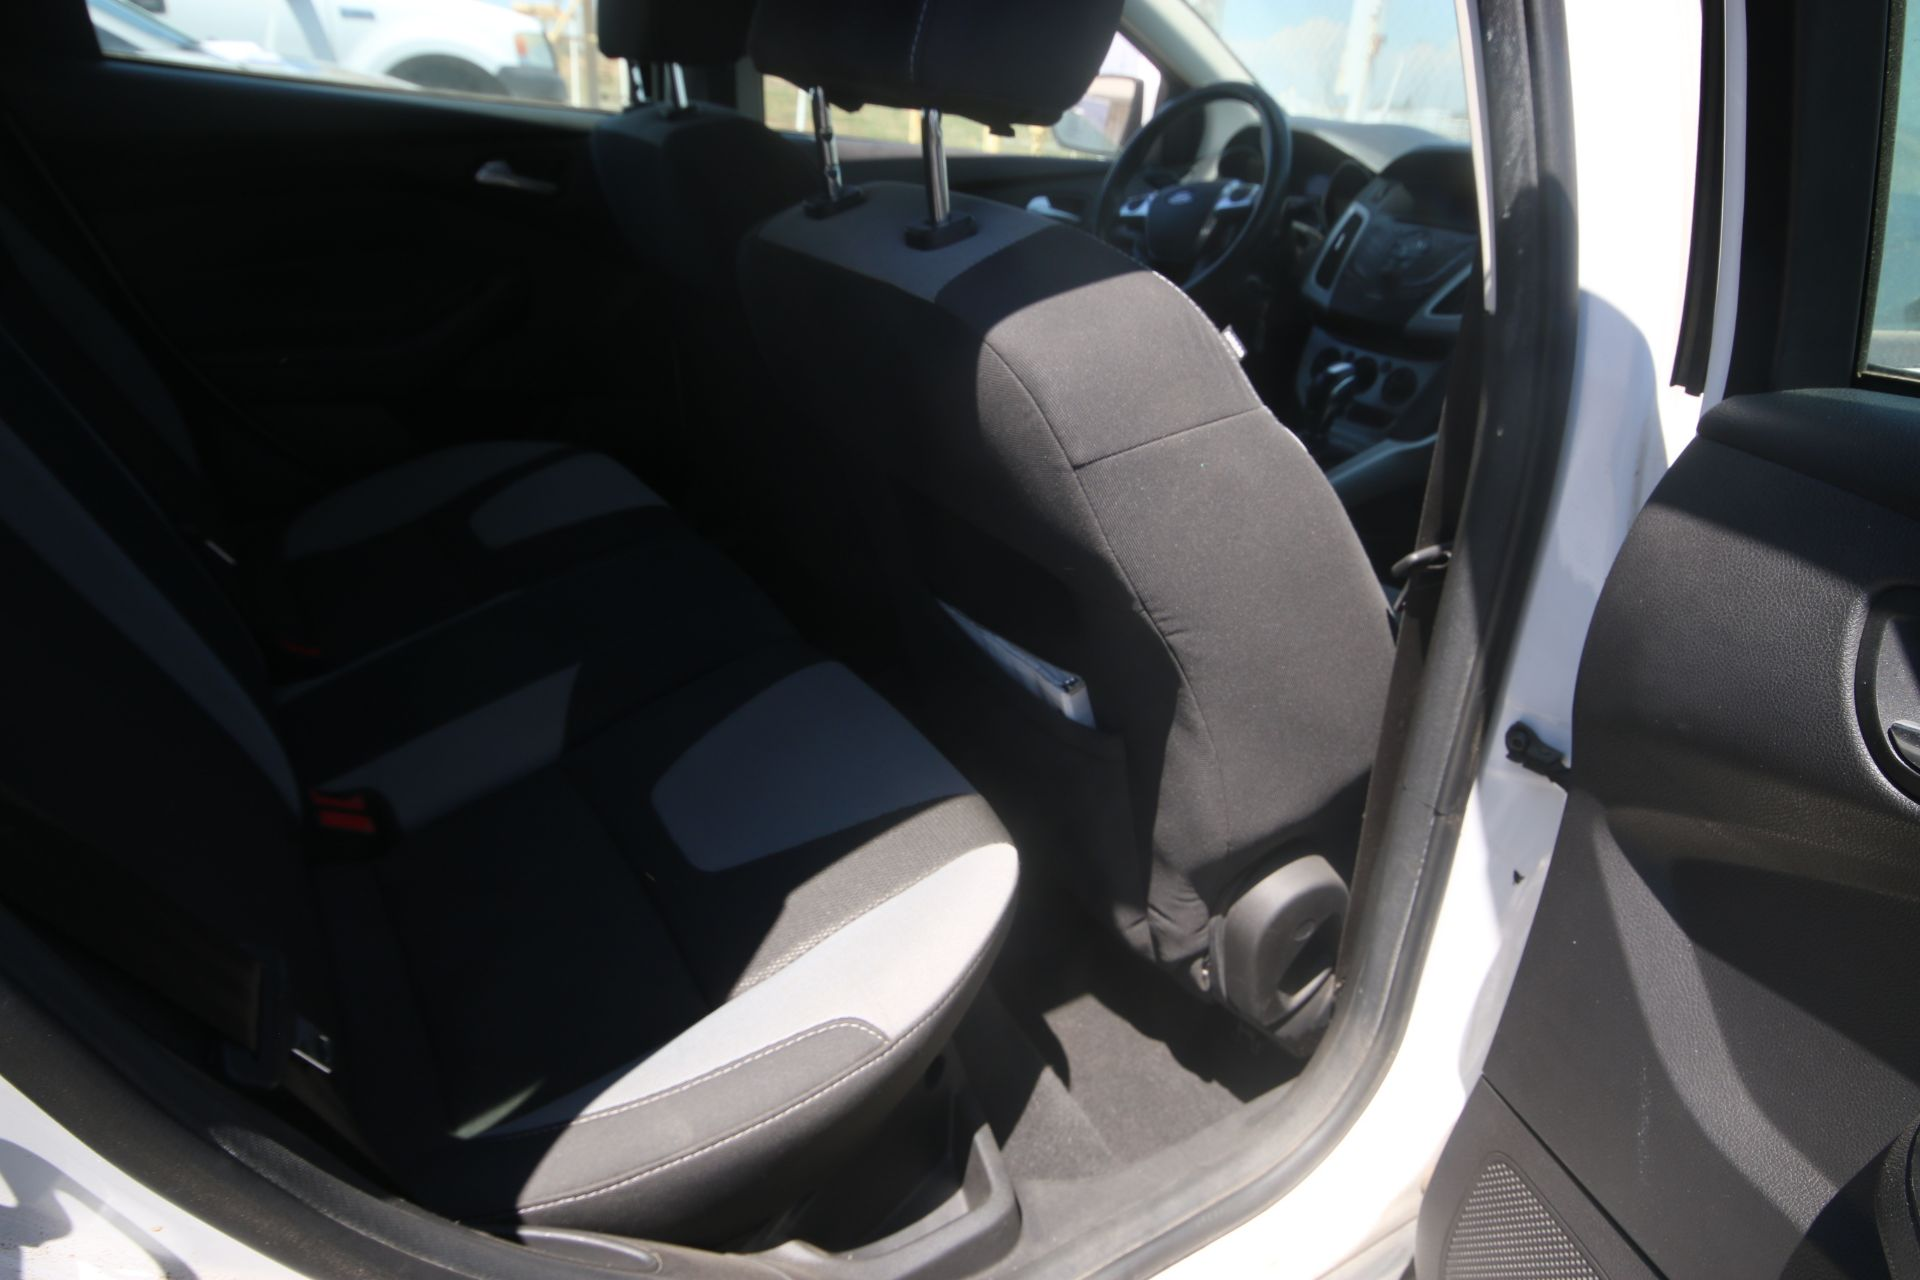 2012 White Ford Focus SE Hatchback 4D, VIN #: 1FAHP3K27CL423326, with 116,017 Miles, with 4-Doors, - Image 15 of 26